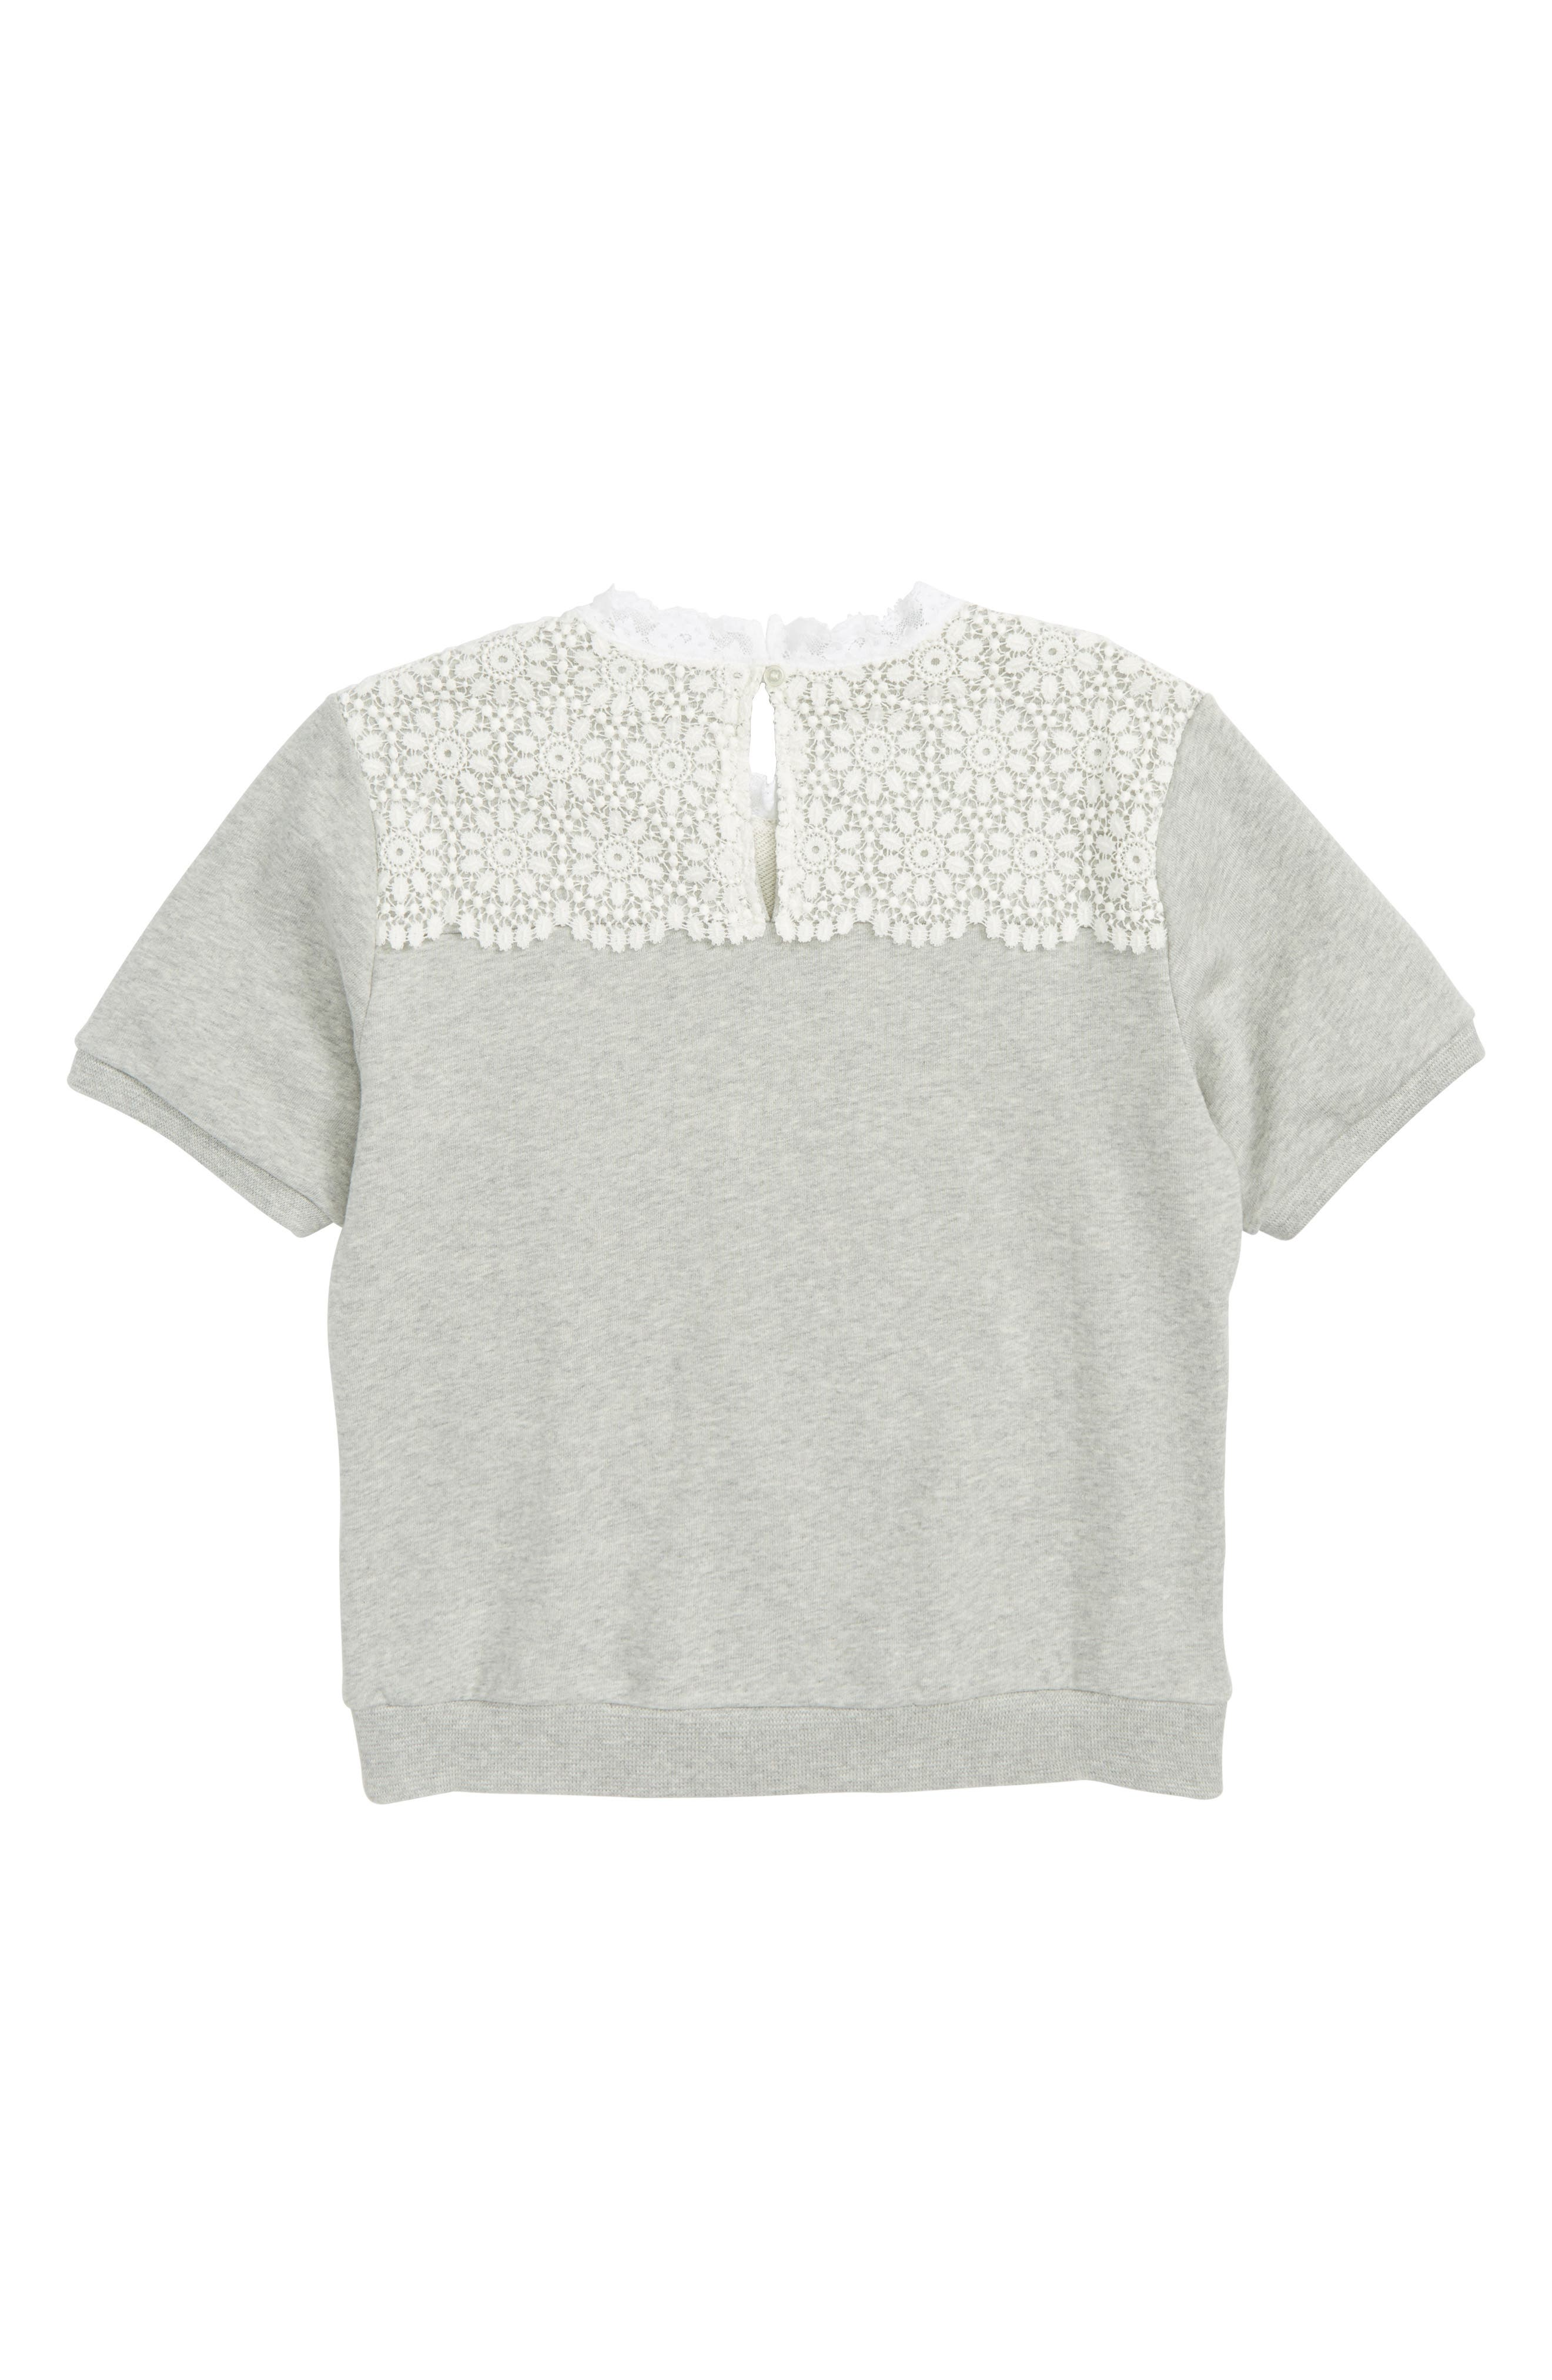 Hettie Lace Short Sleeve Sweater,                             Alternate thumbnail 2, color,